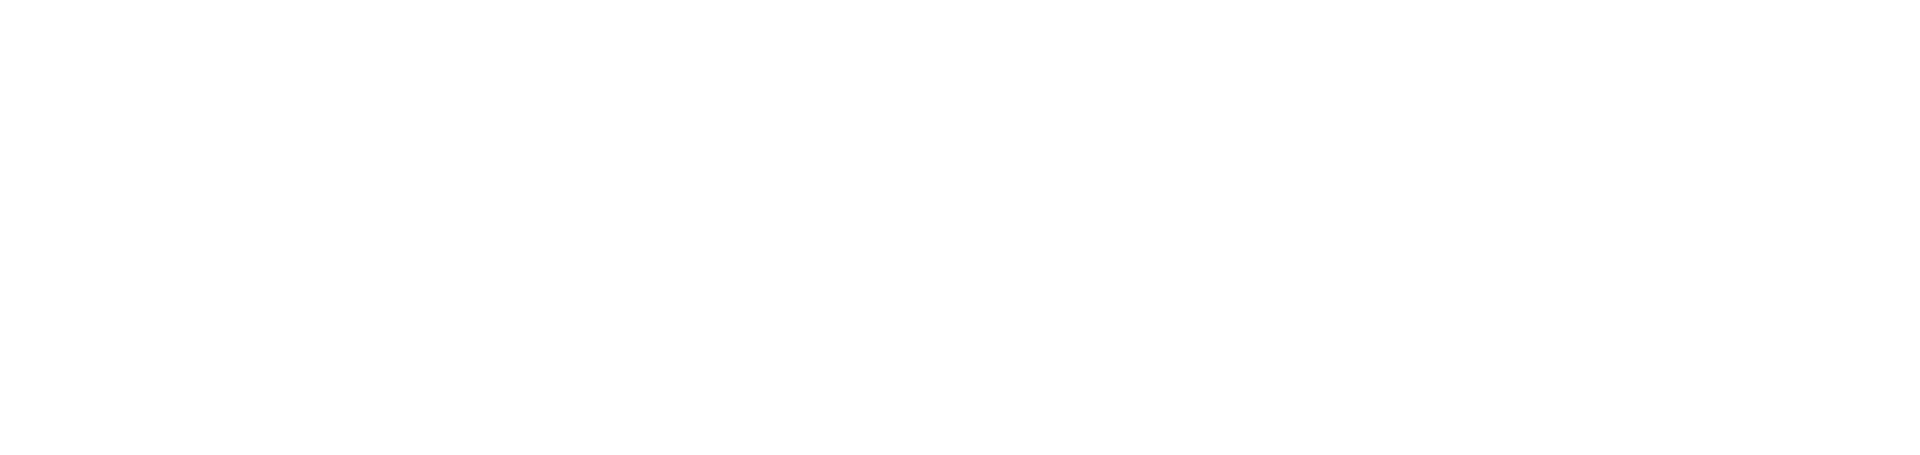 Brownstoner Pages logo